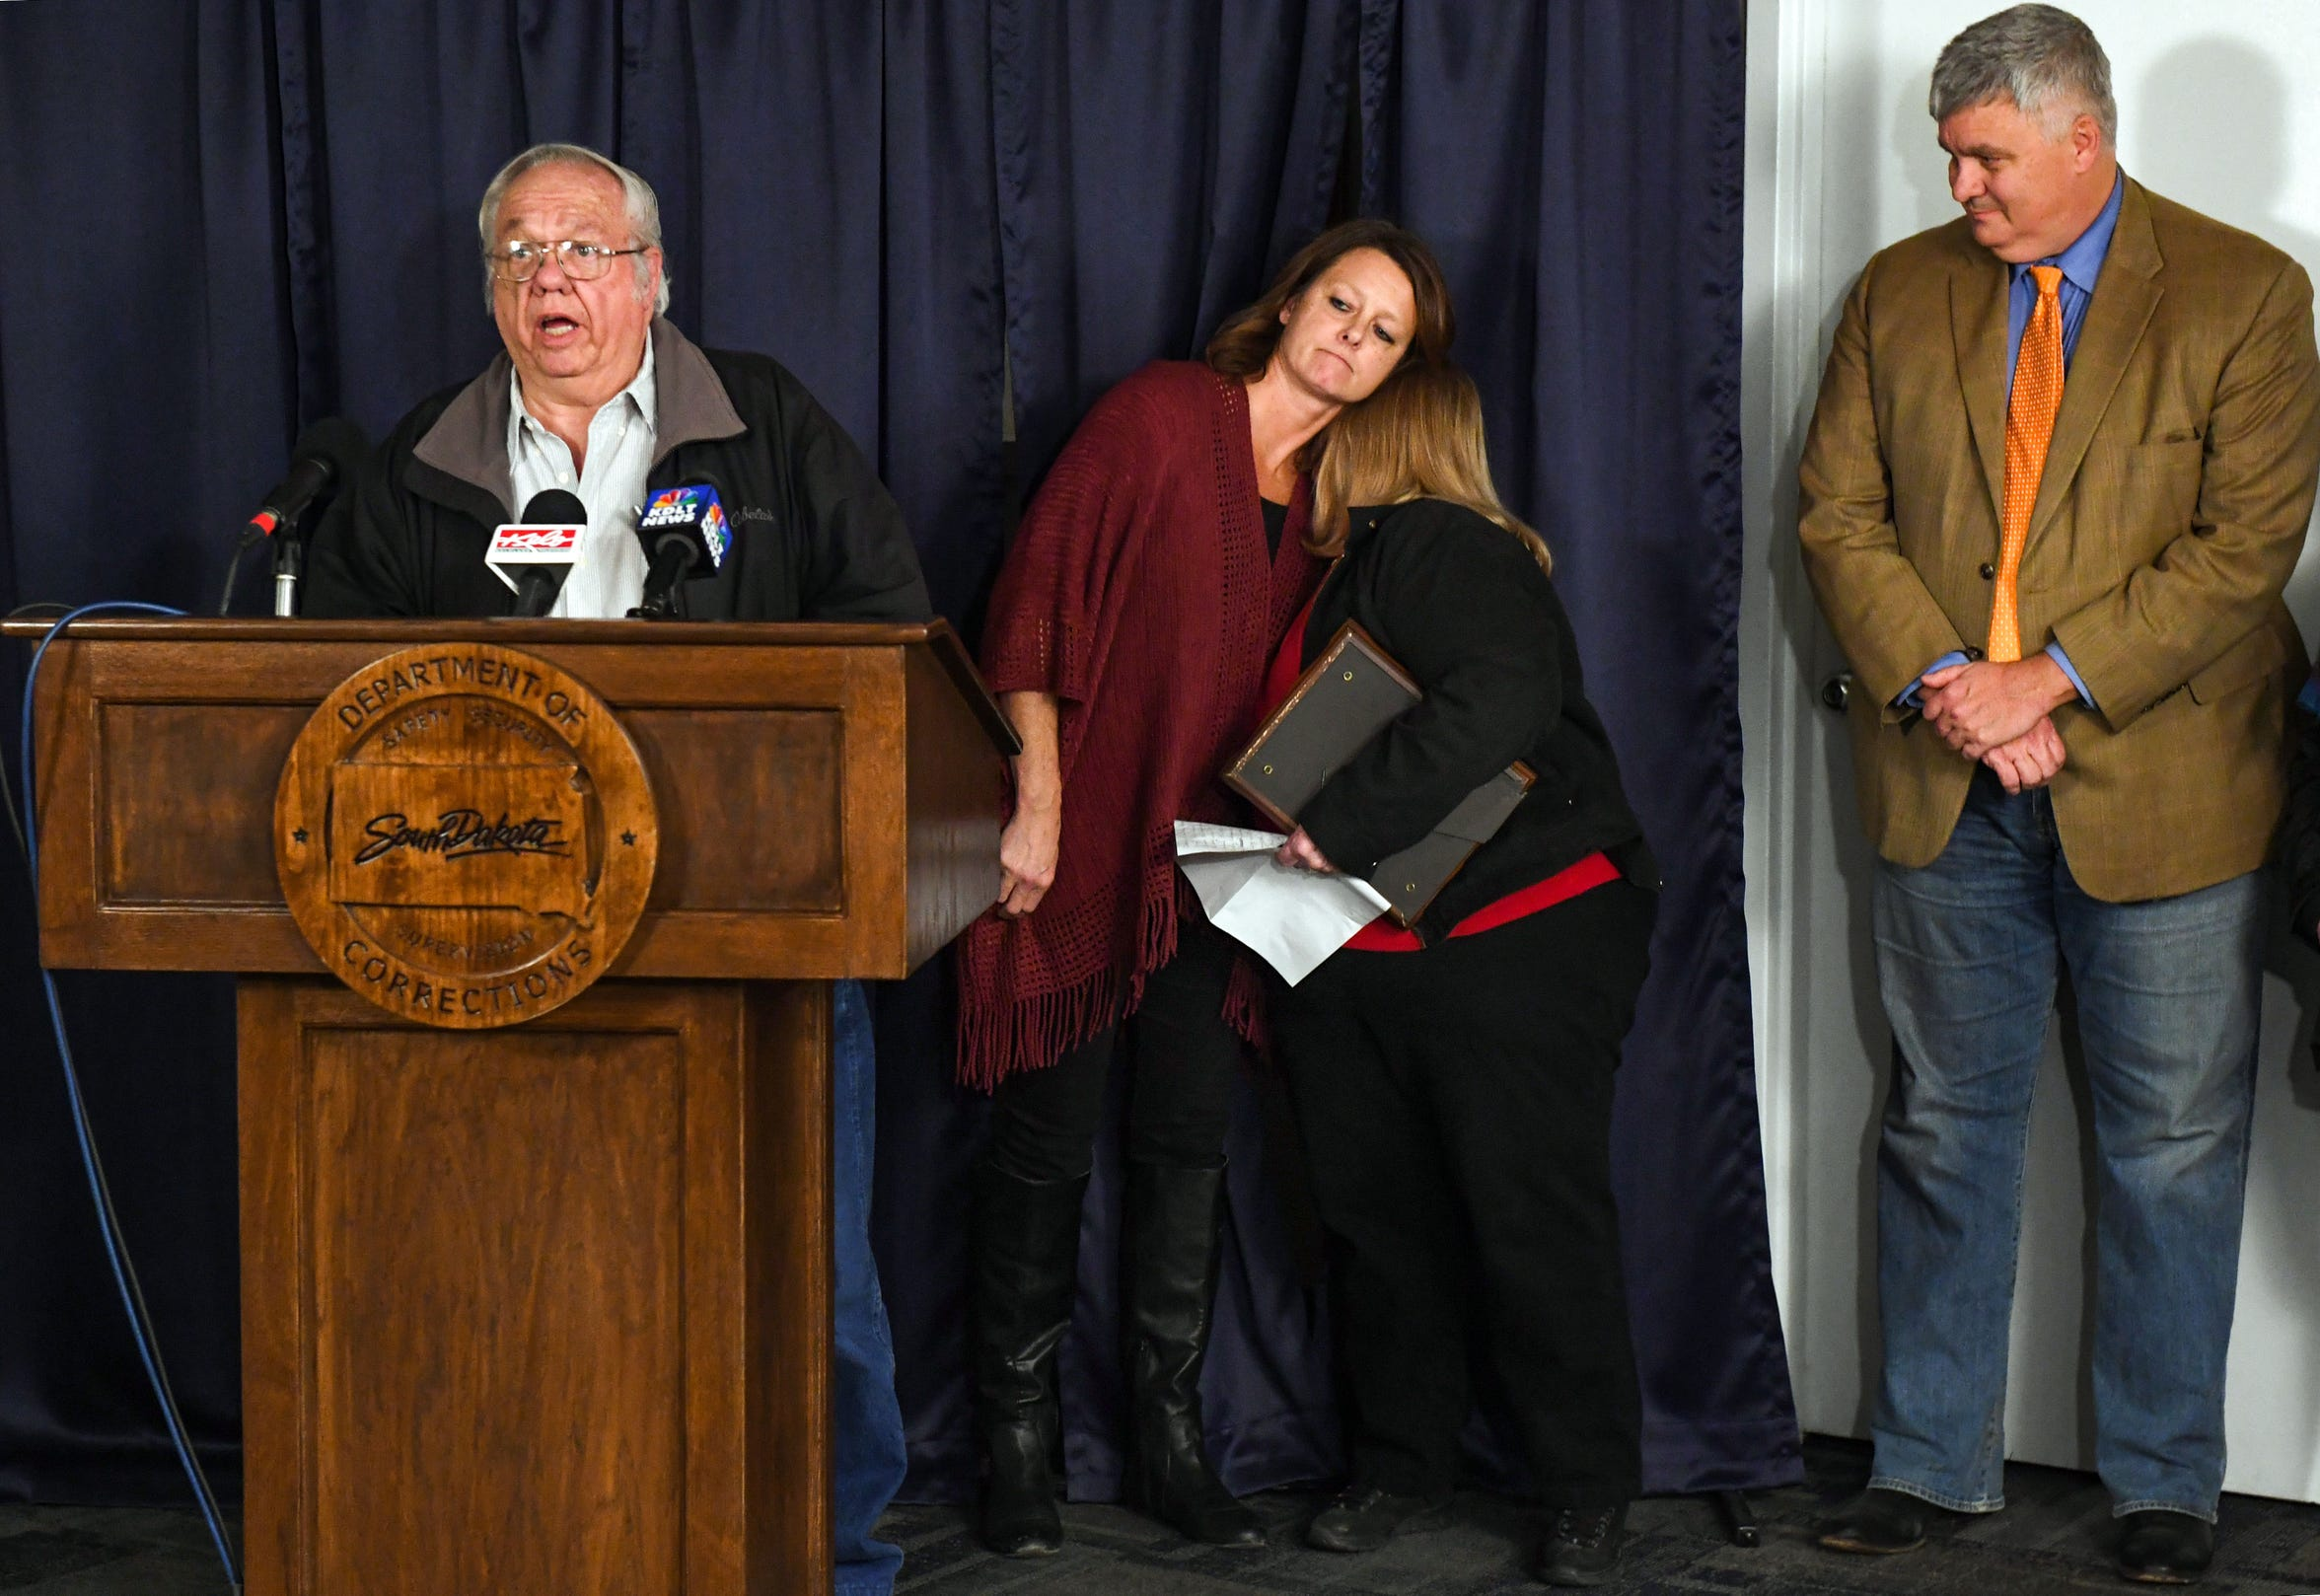 Ed Schaeffer, the father of victim Donnivan, speaks following the execution of Charles Rhines while mother Peggy Schaeffer hugs Sheila Pond Jackson, Donnivan's former fiancee, Monday, November 4, 2019 at the South Dakota State Penitentiary in Sioux Falls.